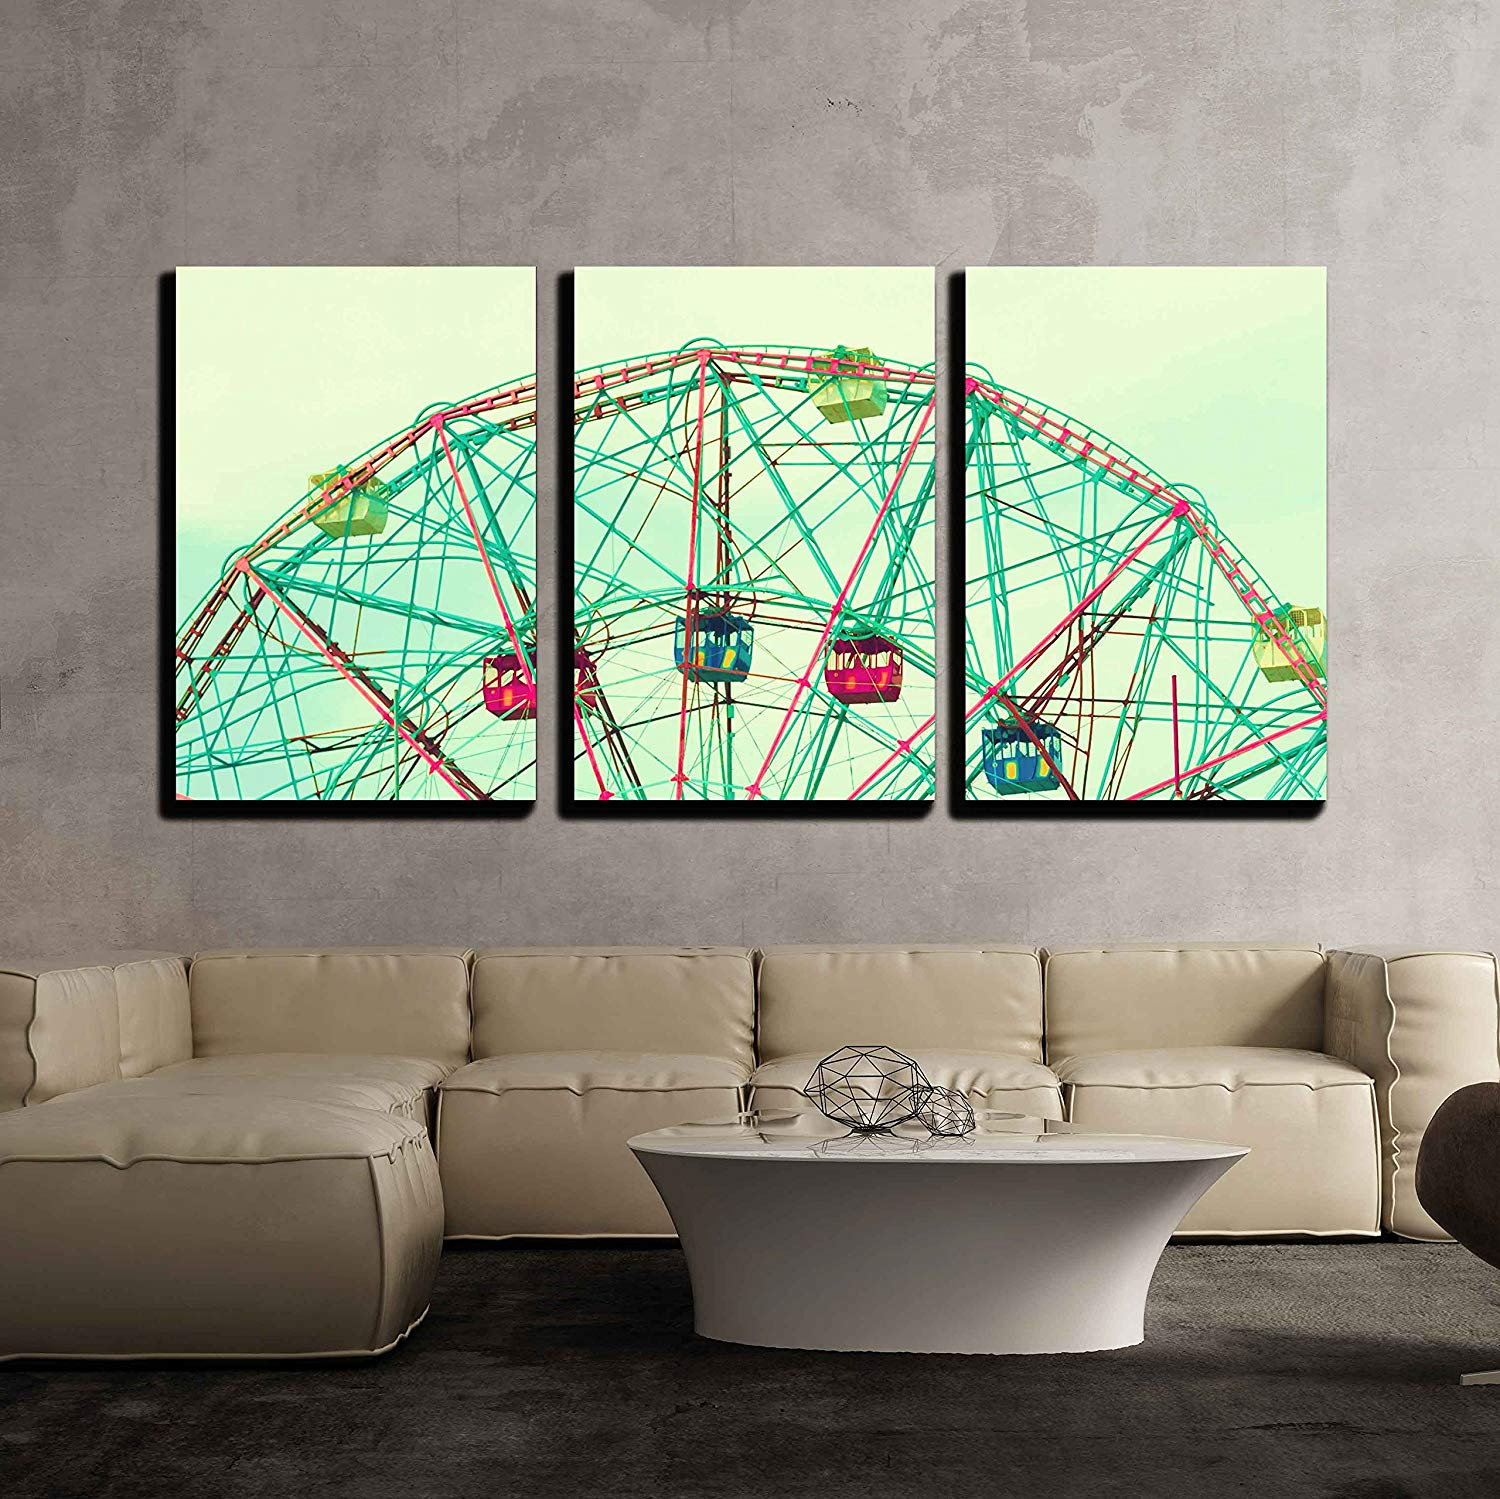 """wall26 - 3 Piece Canvas Wall Art - Ferris Wheel - Modern Home Decor Stretched and Framed Ready to Hang - 24""""x36""""x3 Panels"""